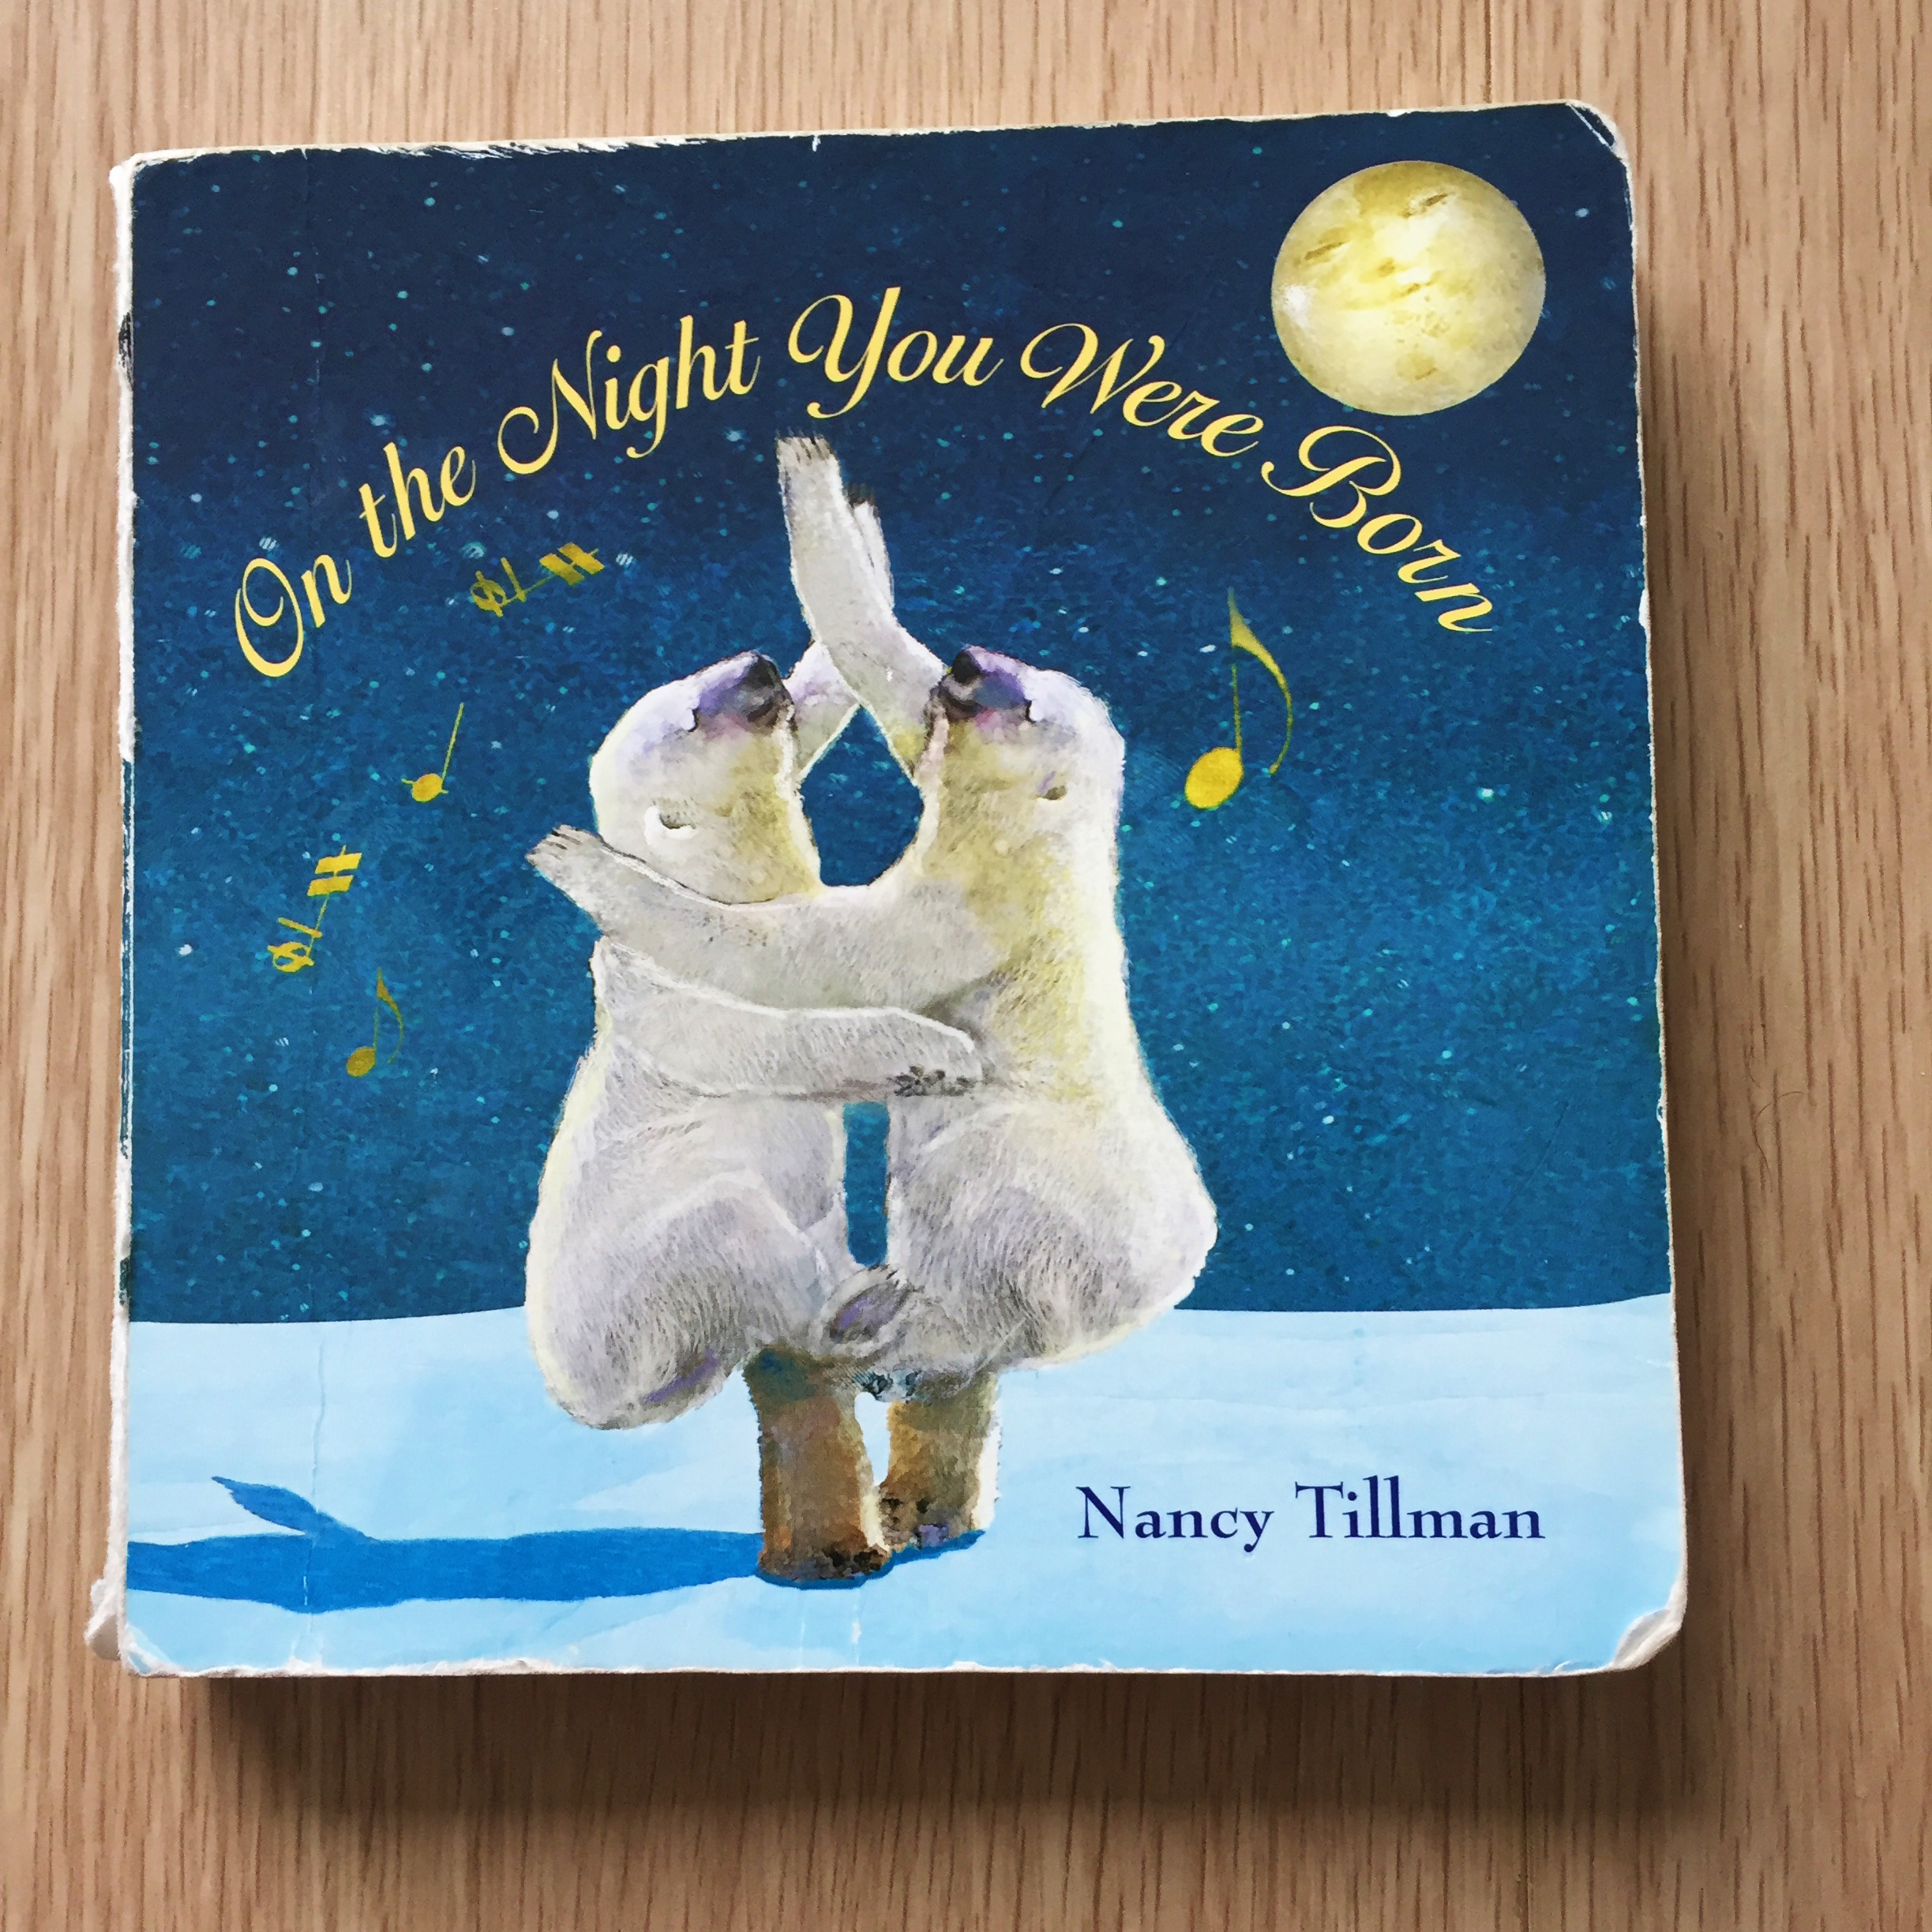 - 1. On the Night You Were Born by Nancy Tillman.A true classic in our household! I hope this book stays in our family for years to come. This was one of the first books I started reading Q once he entered out world. It very quickly became a night time ritual. The words are magical and the illustrations always spark innocent curiosity in his eyes. It's a book celebrating birth, the love and joy it's brought to the people surrounding the child and everyone's worth in this world.